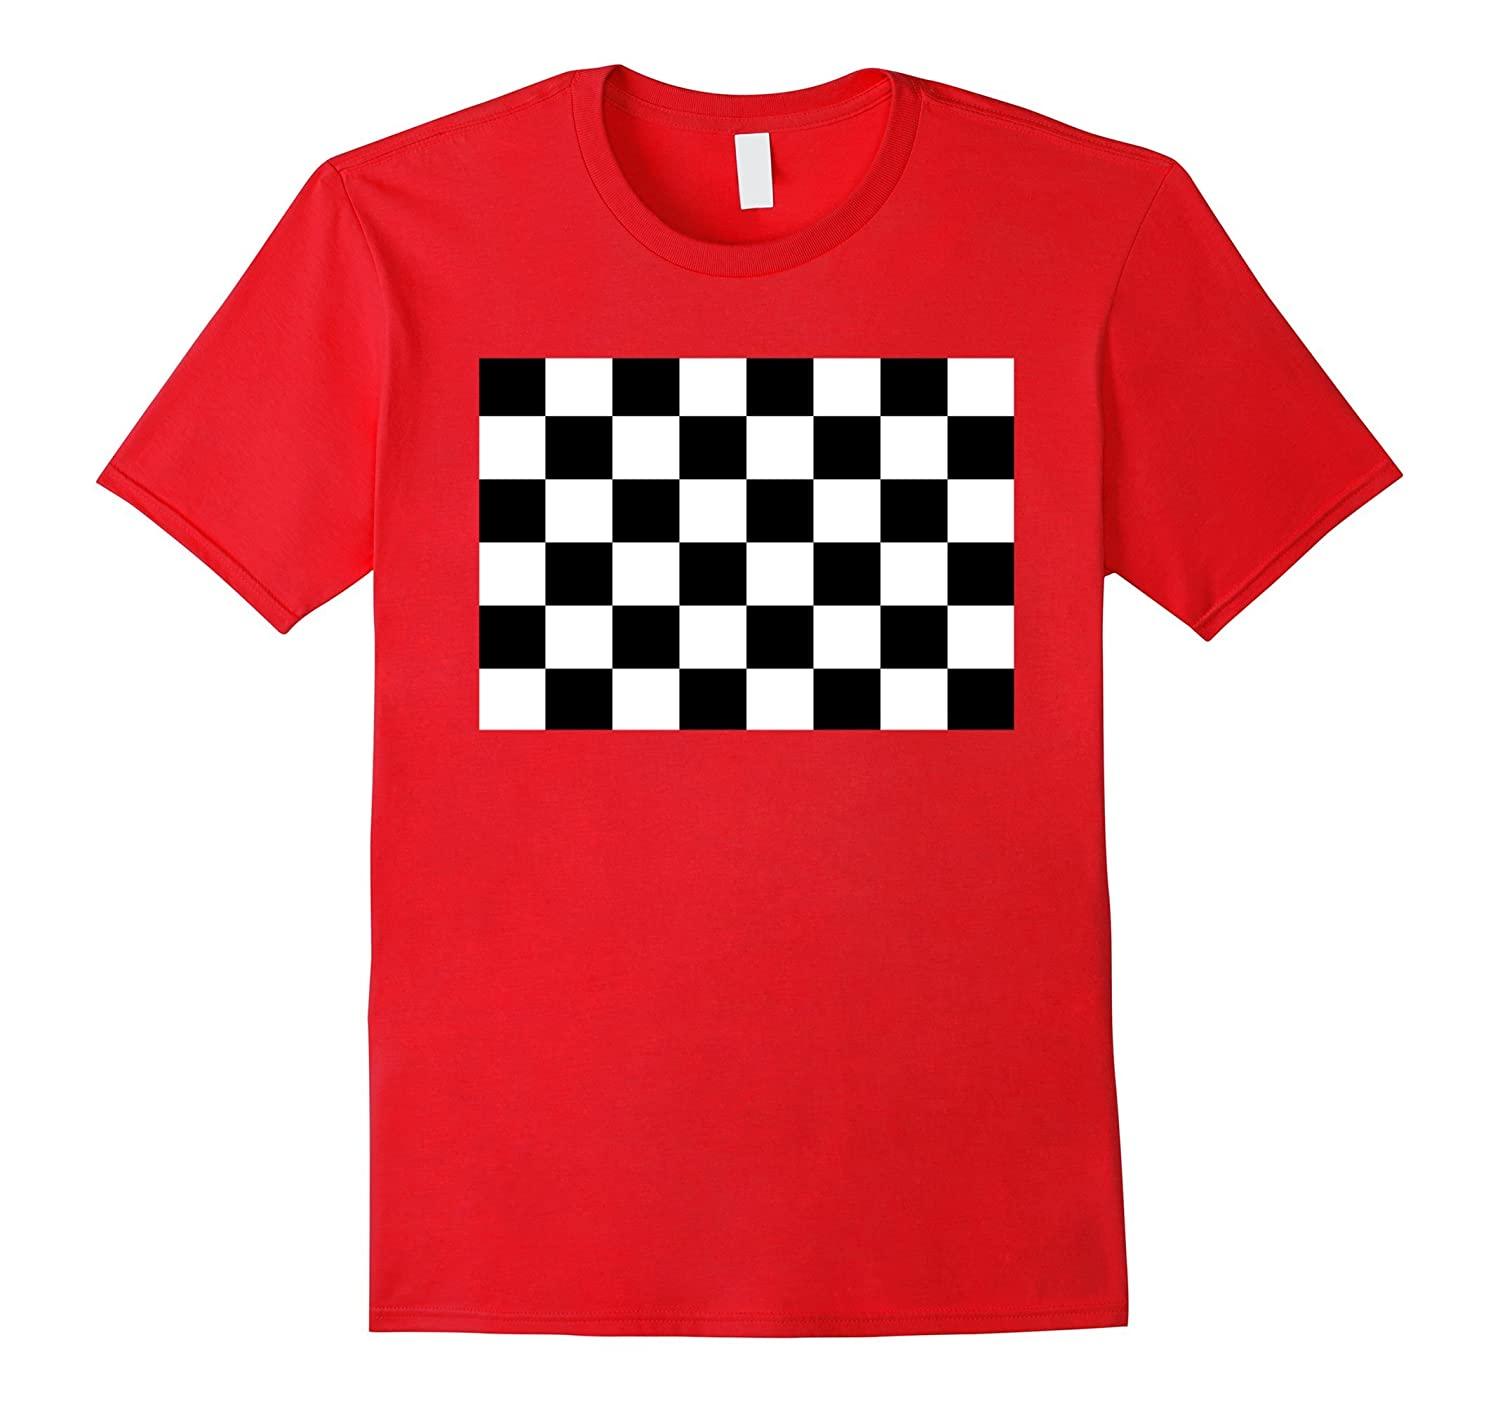 Dicky Ticker Checked Flag T-shirt Racing Cars-Vaci